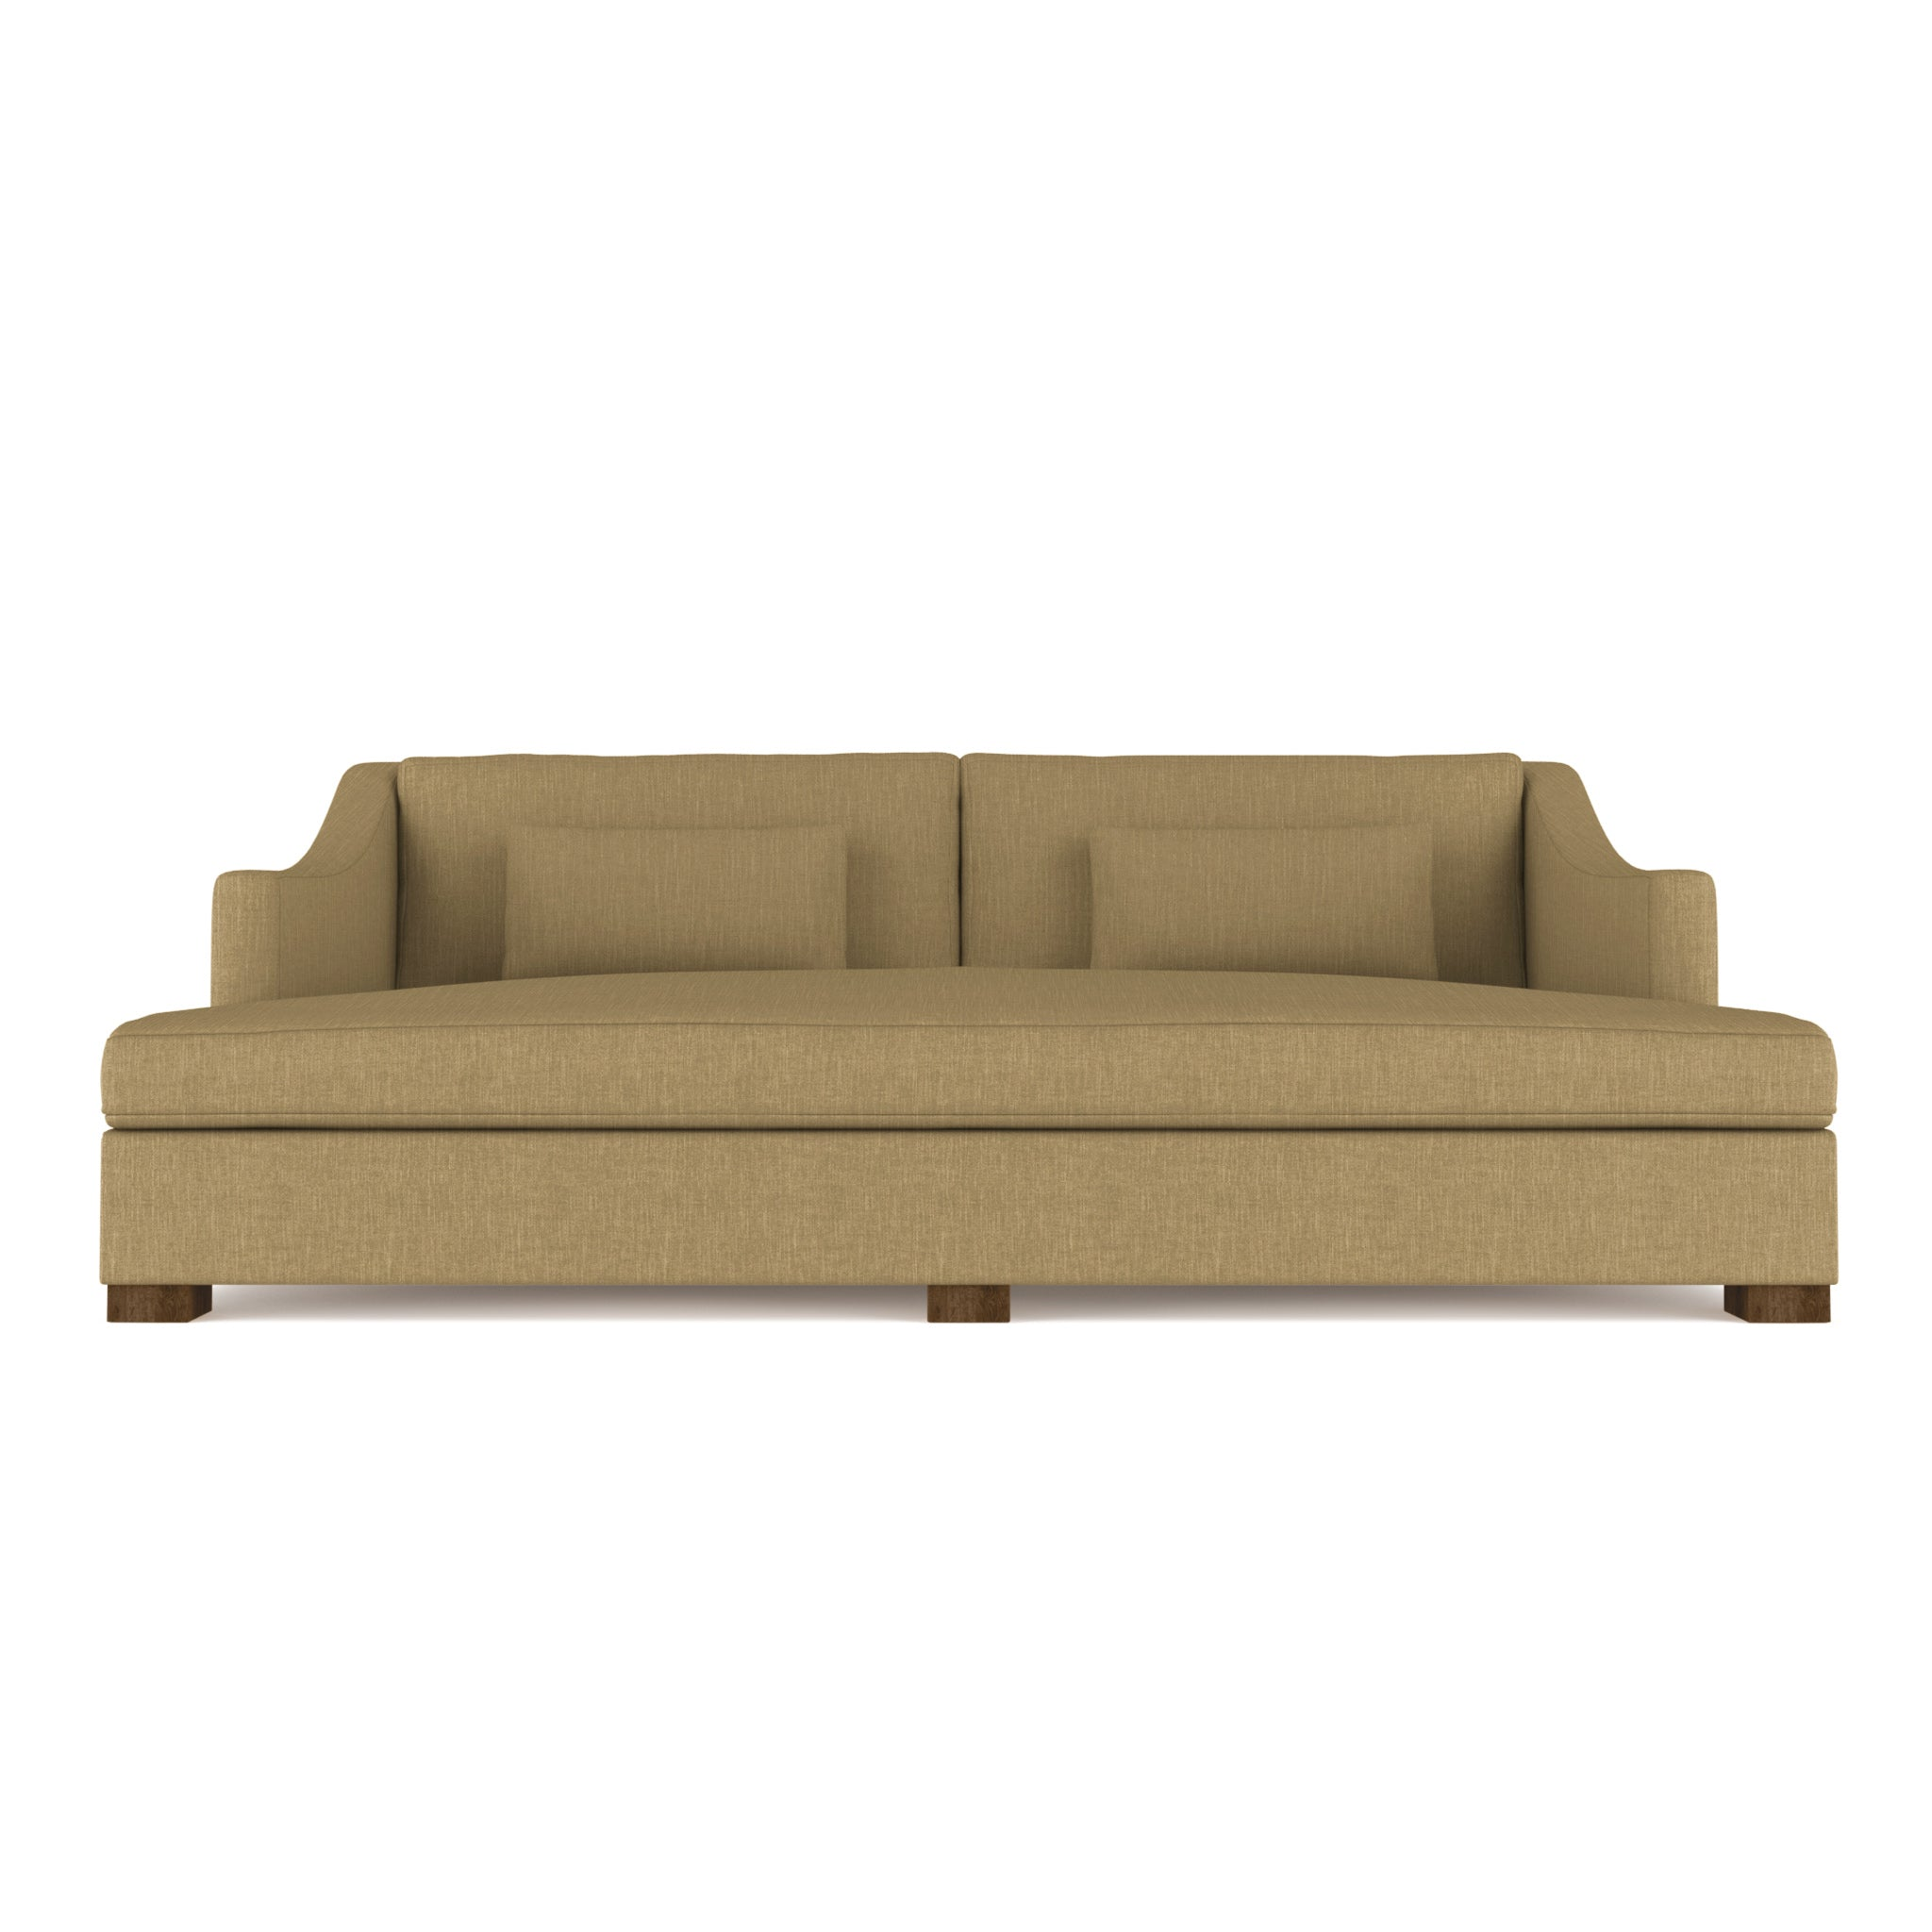 Crosby Daybed - Marzipan Box Weave Linen